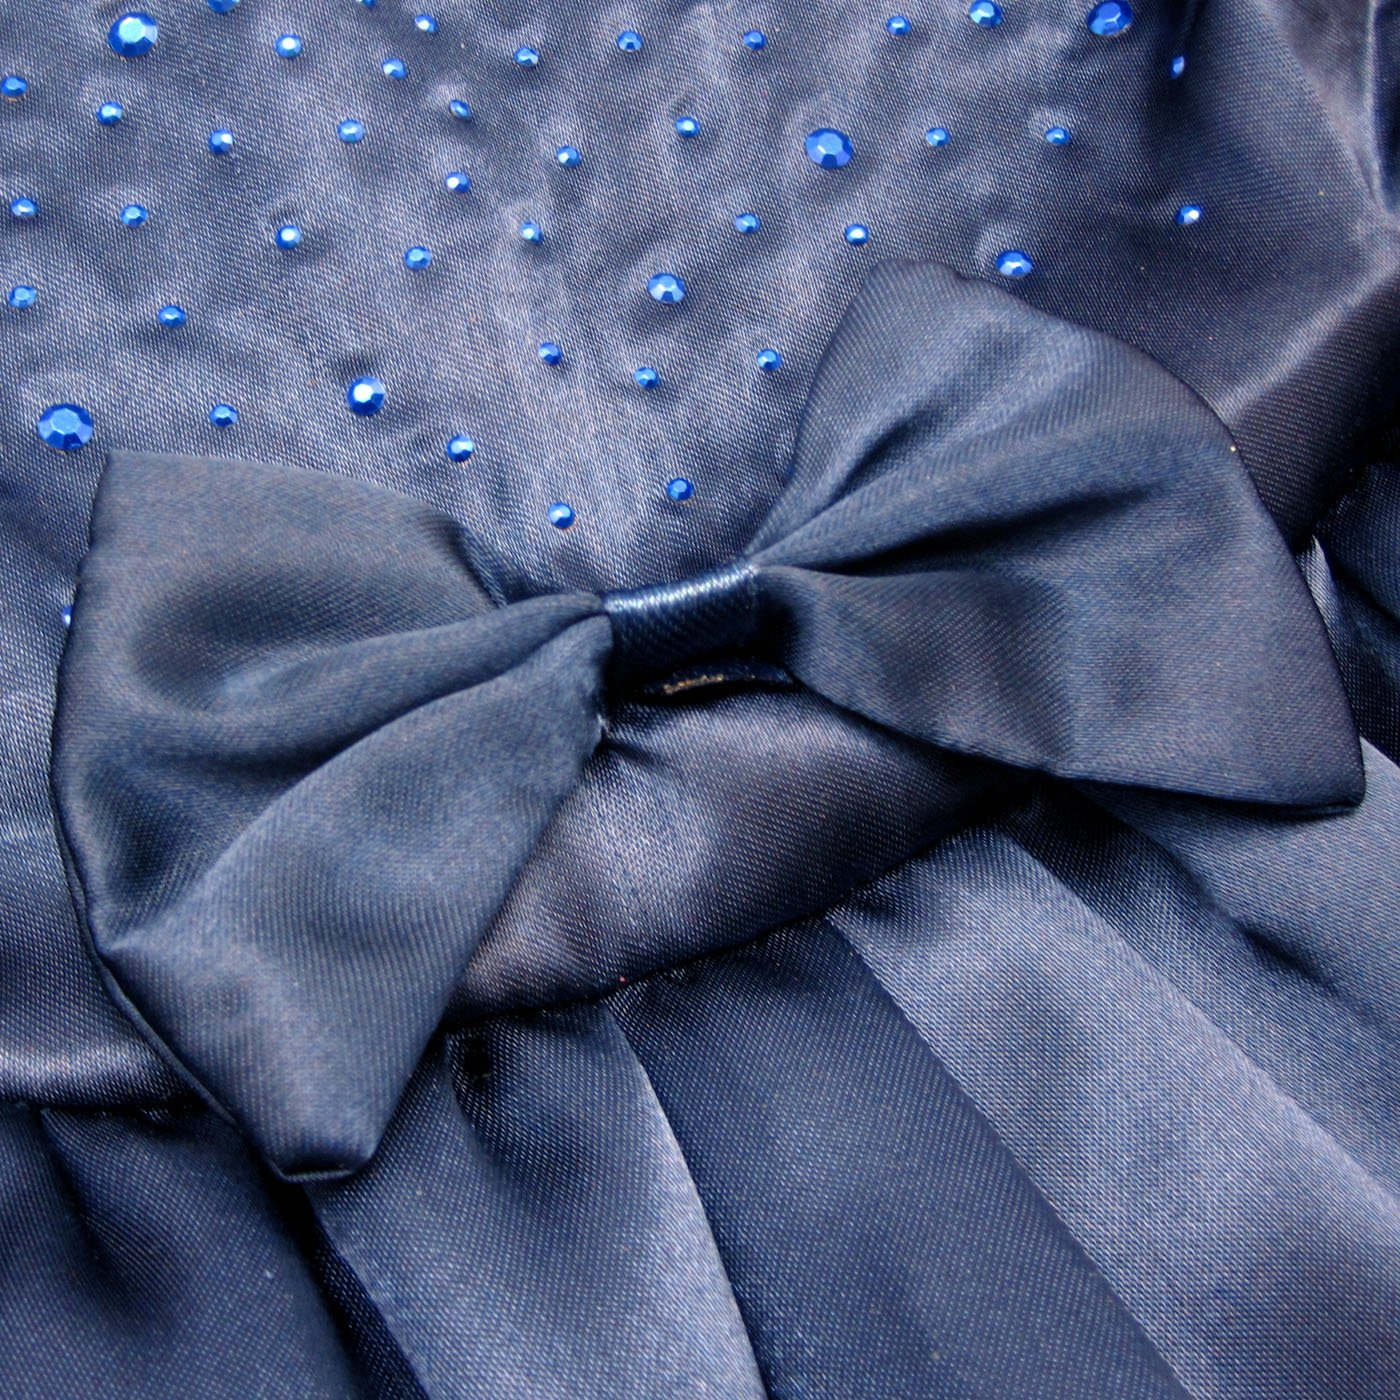 Alfie Pet by Petoga Couture - Shirley Tutu Party Dress - Color: Navy, Size: Small by Alfie (Image #4)